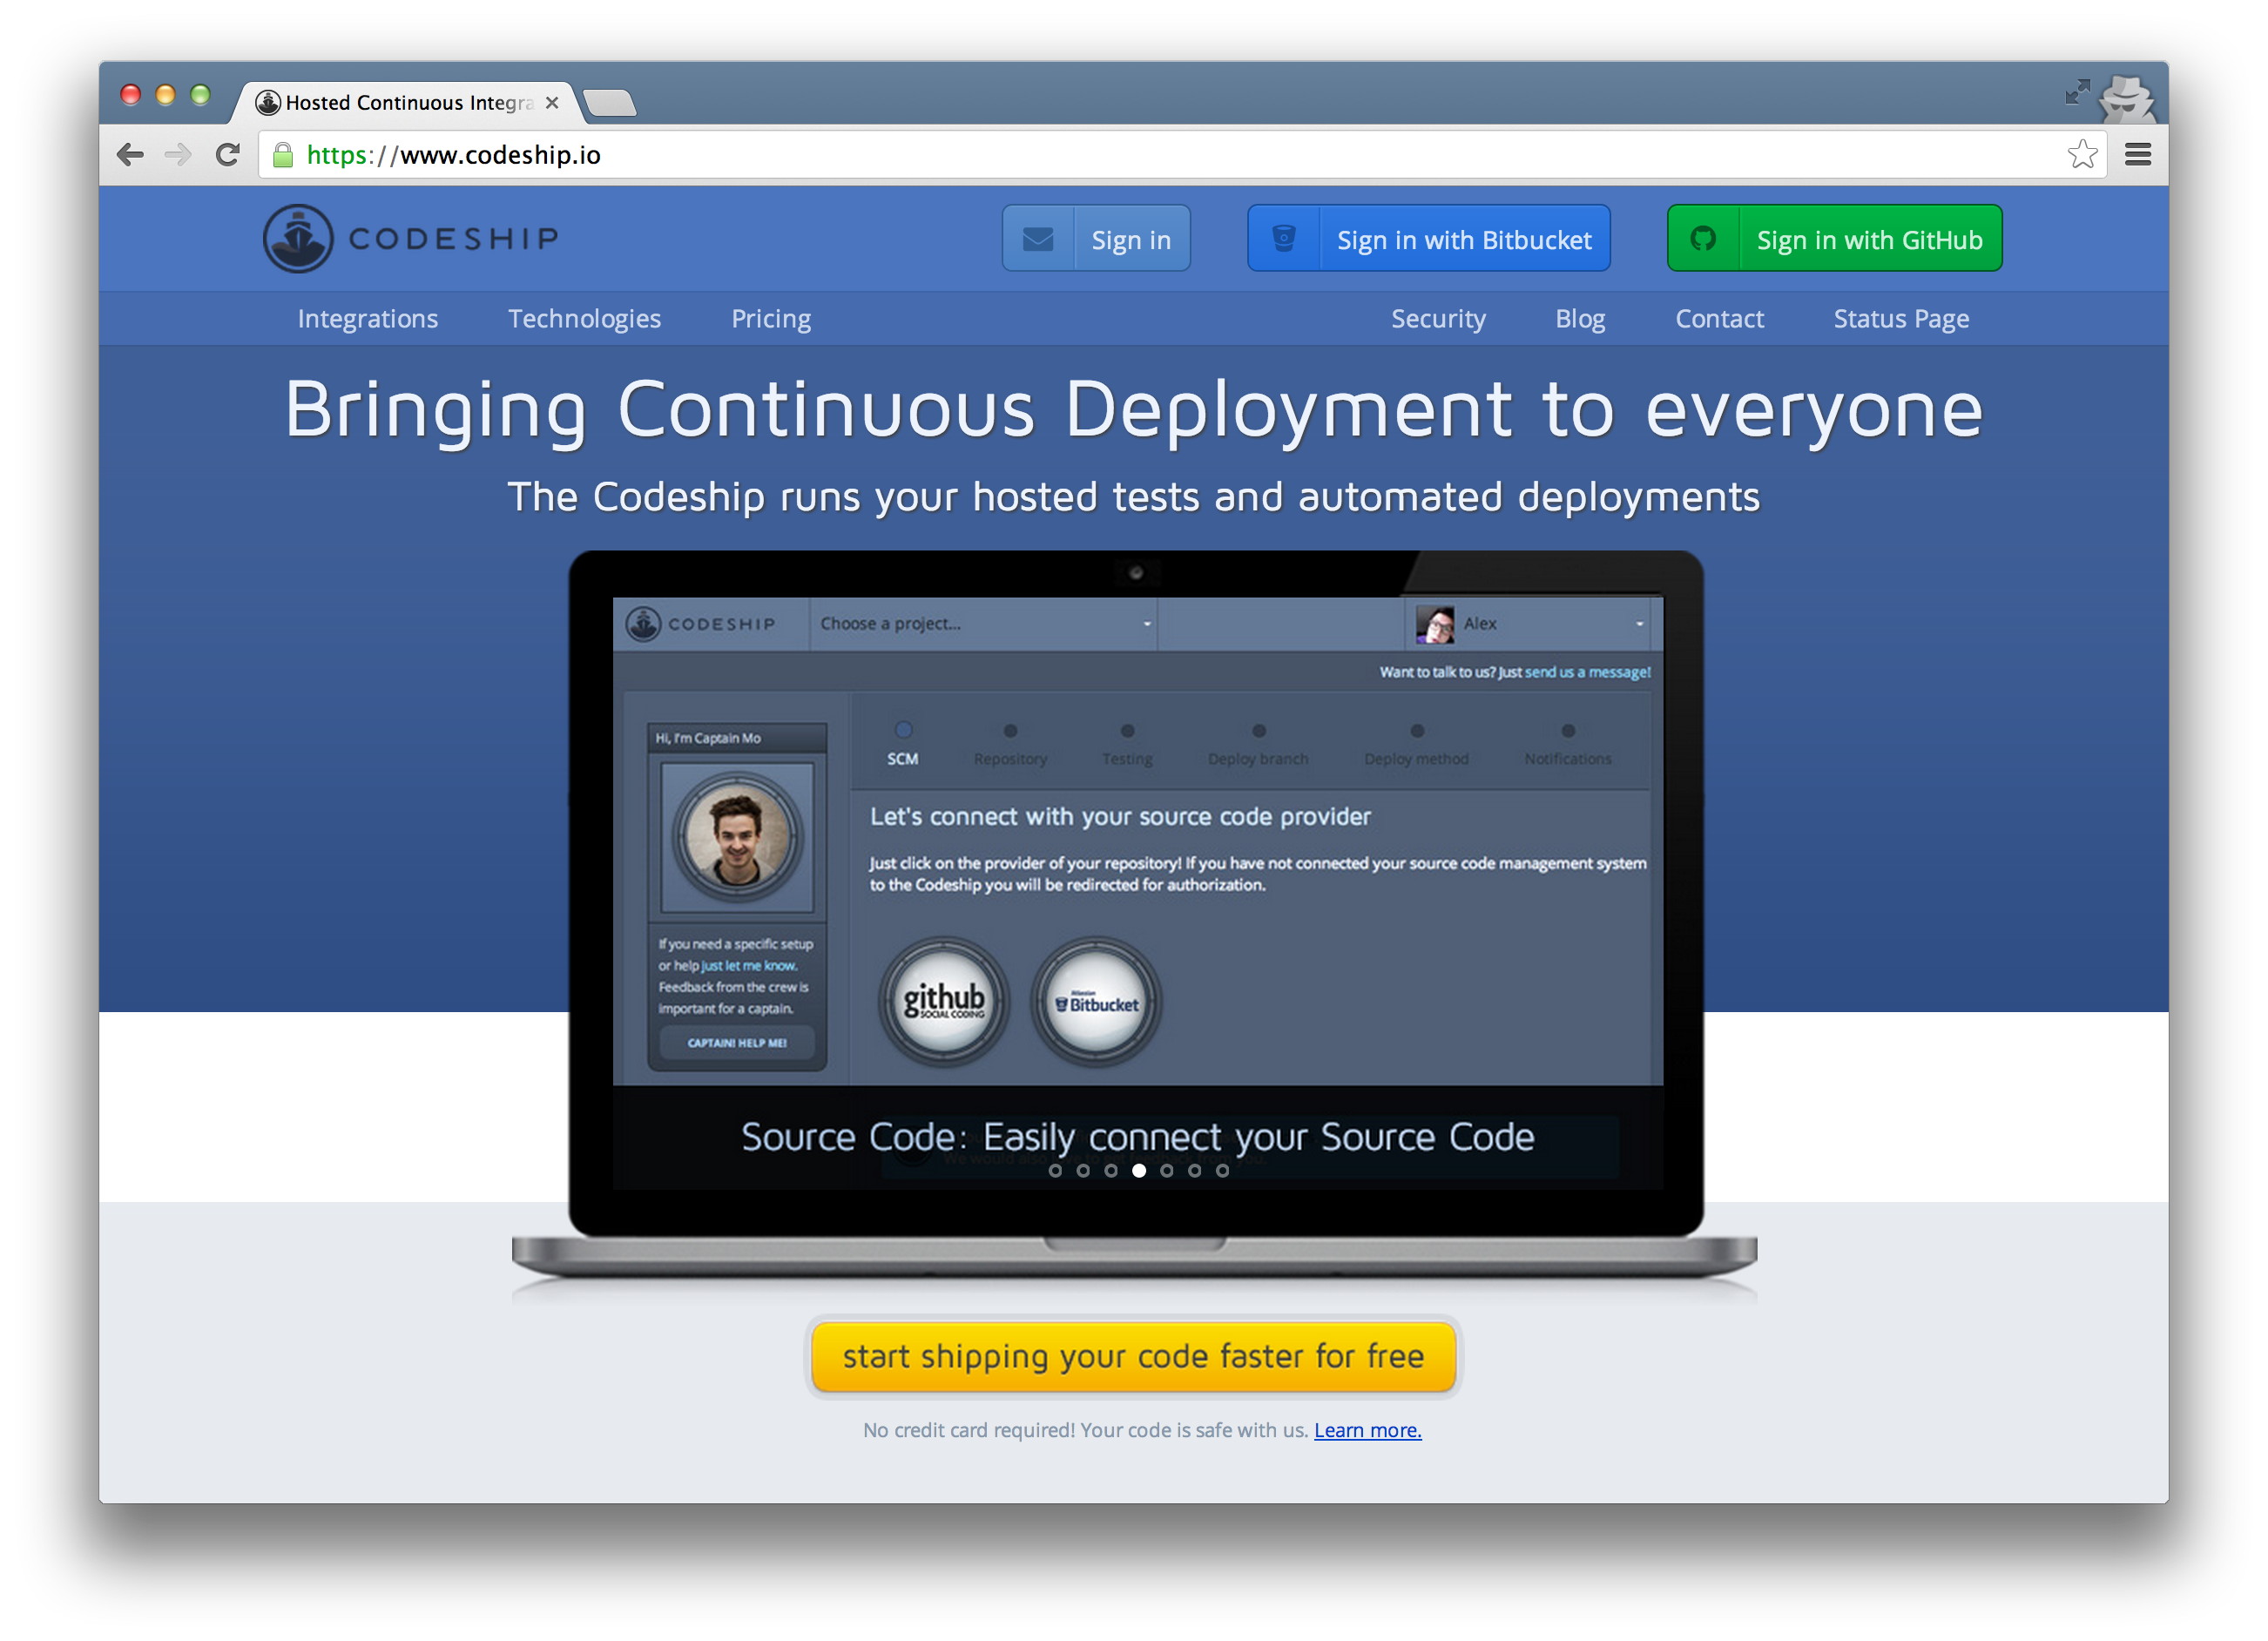 The Codeship Landing Page